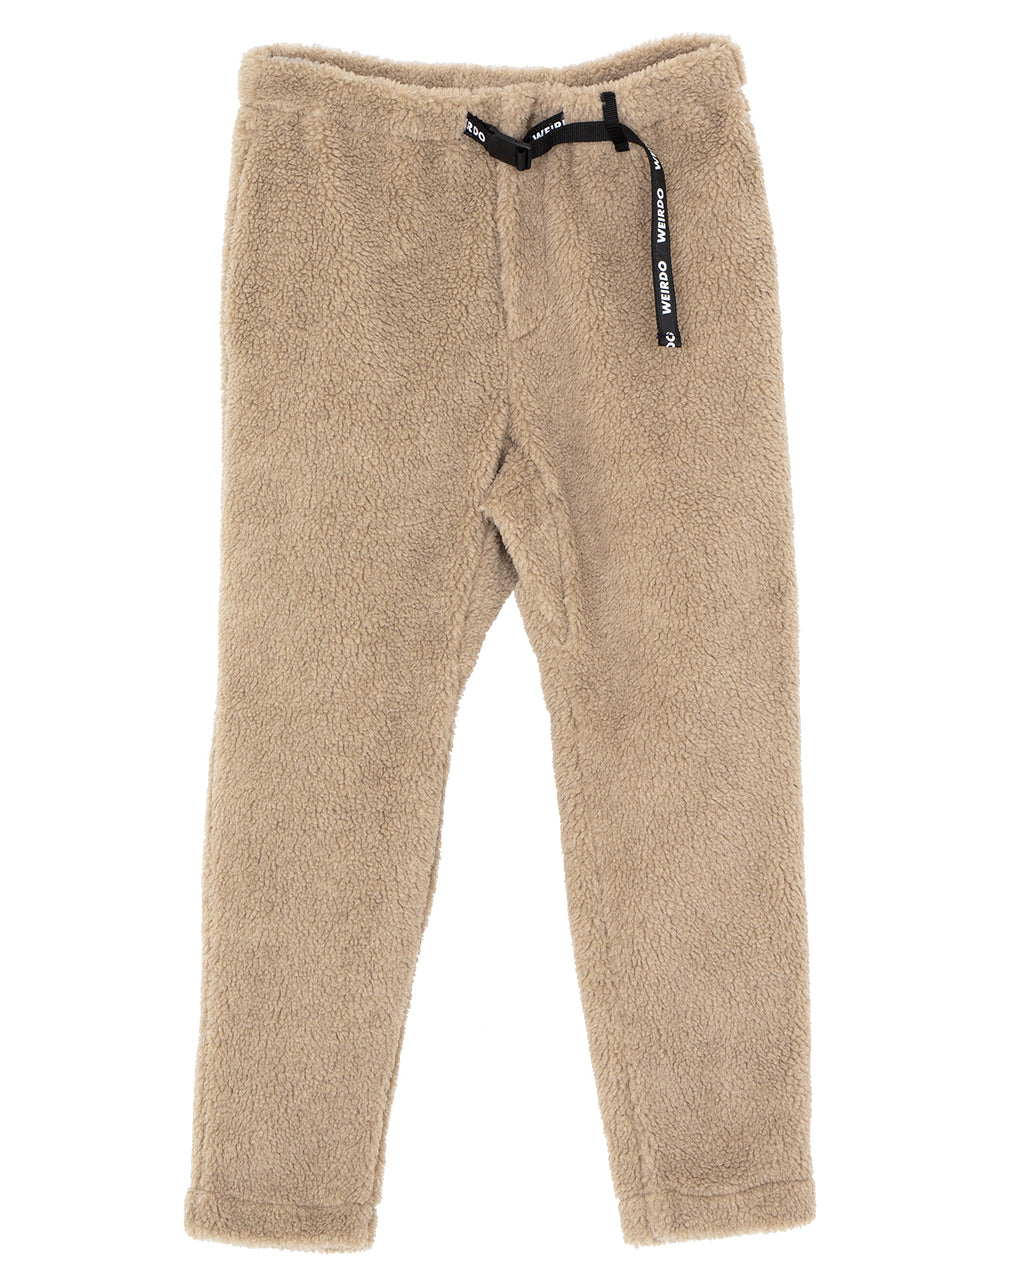 Weirdo Easy Boa Pants, Spice of Life, Beige